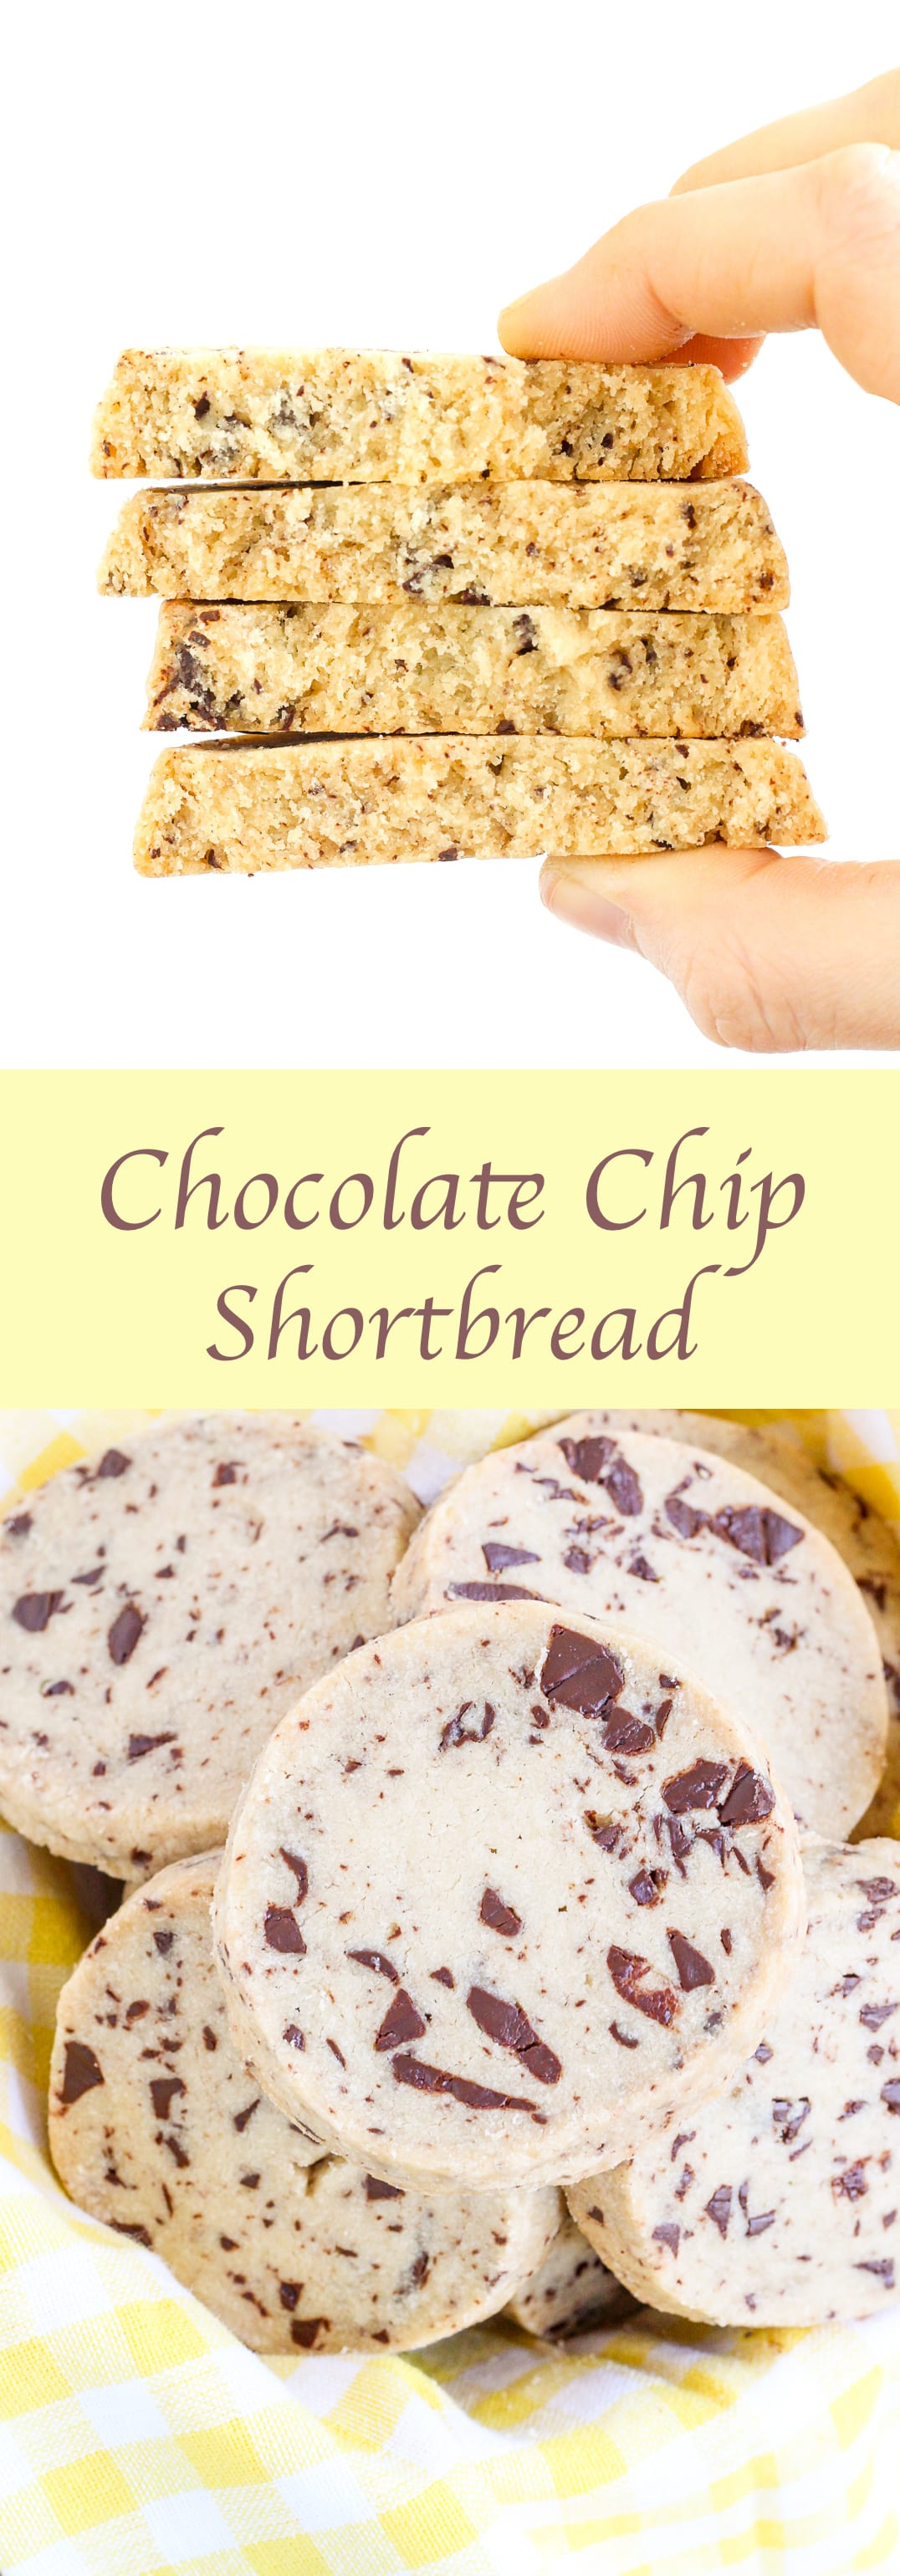 These Chocolate Chip Shortbread Cookies magically have texture of a classic shortbread cookie while remaining soft and moist. A sweet brown sugar, vanilla dough is marbled with semi-sweet chocolate chips for a sweet treat that is perfect as dessert or with a cup of coffee!